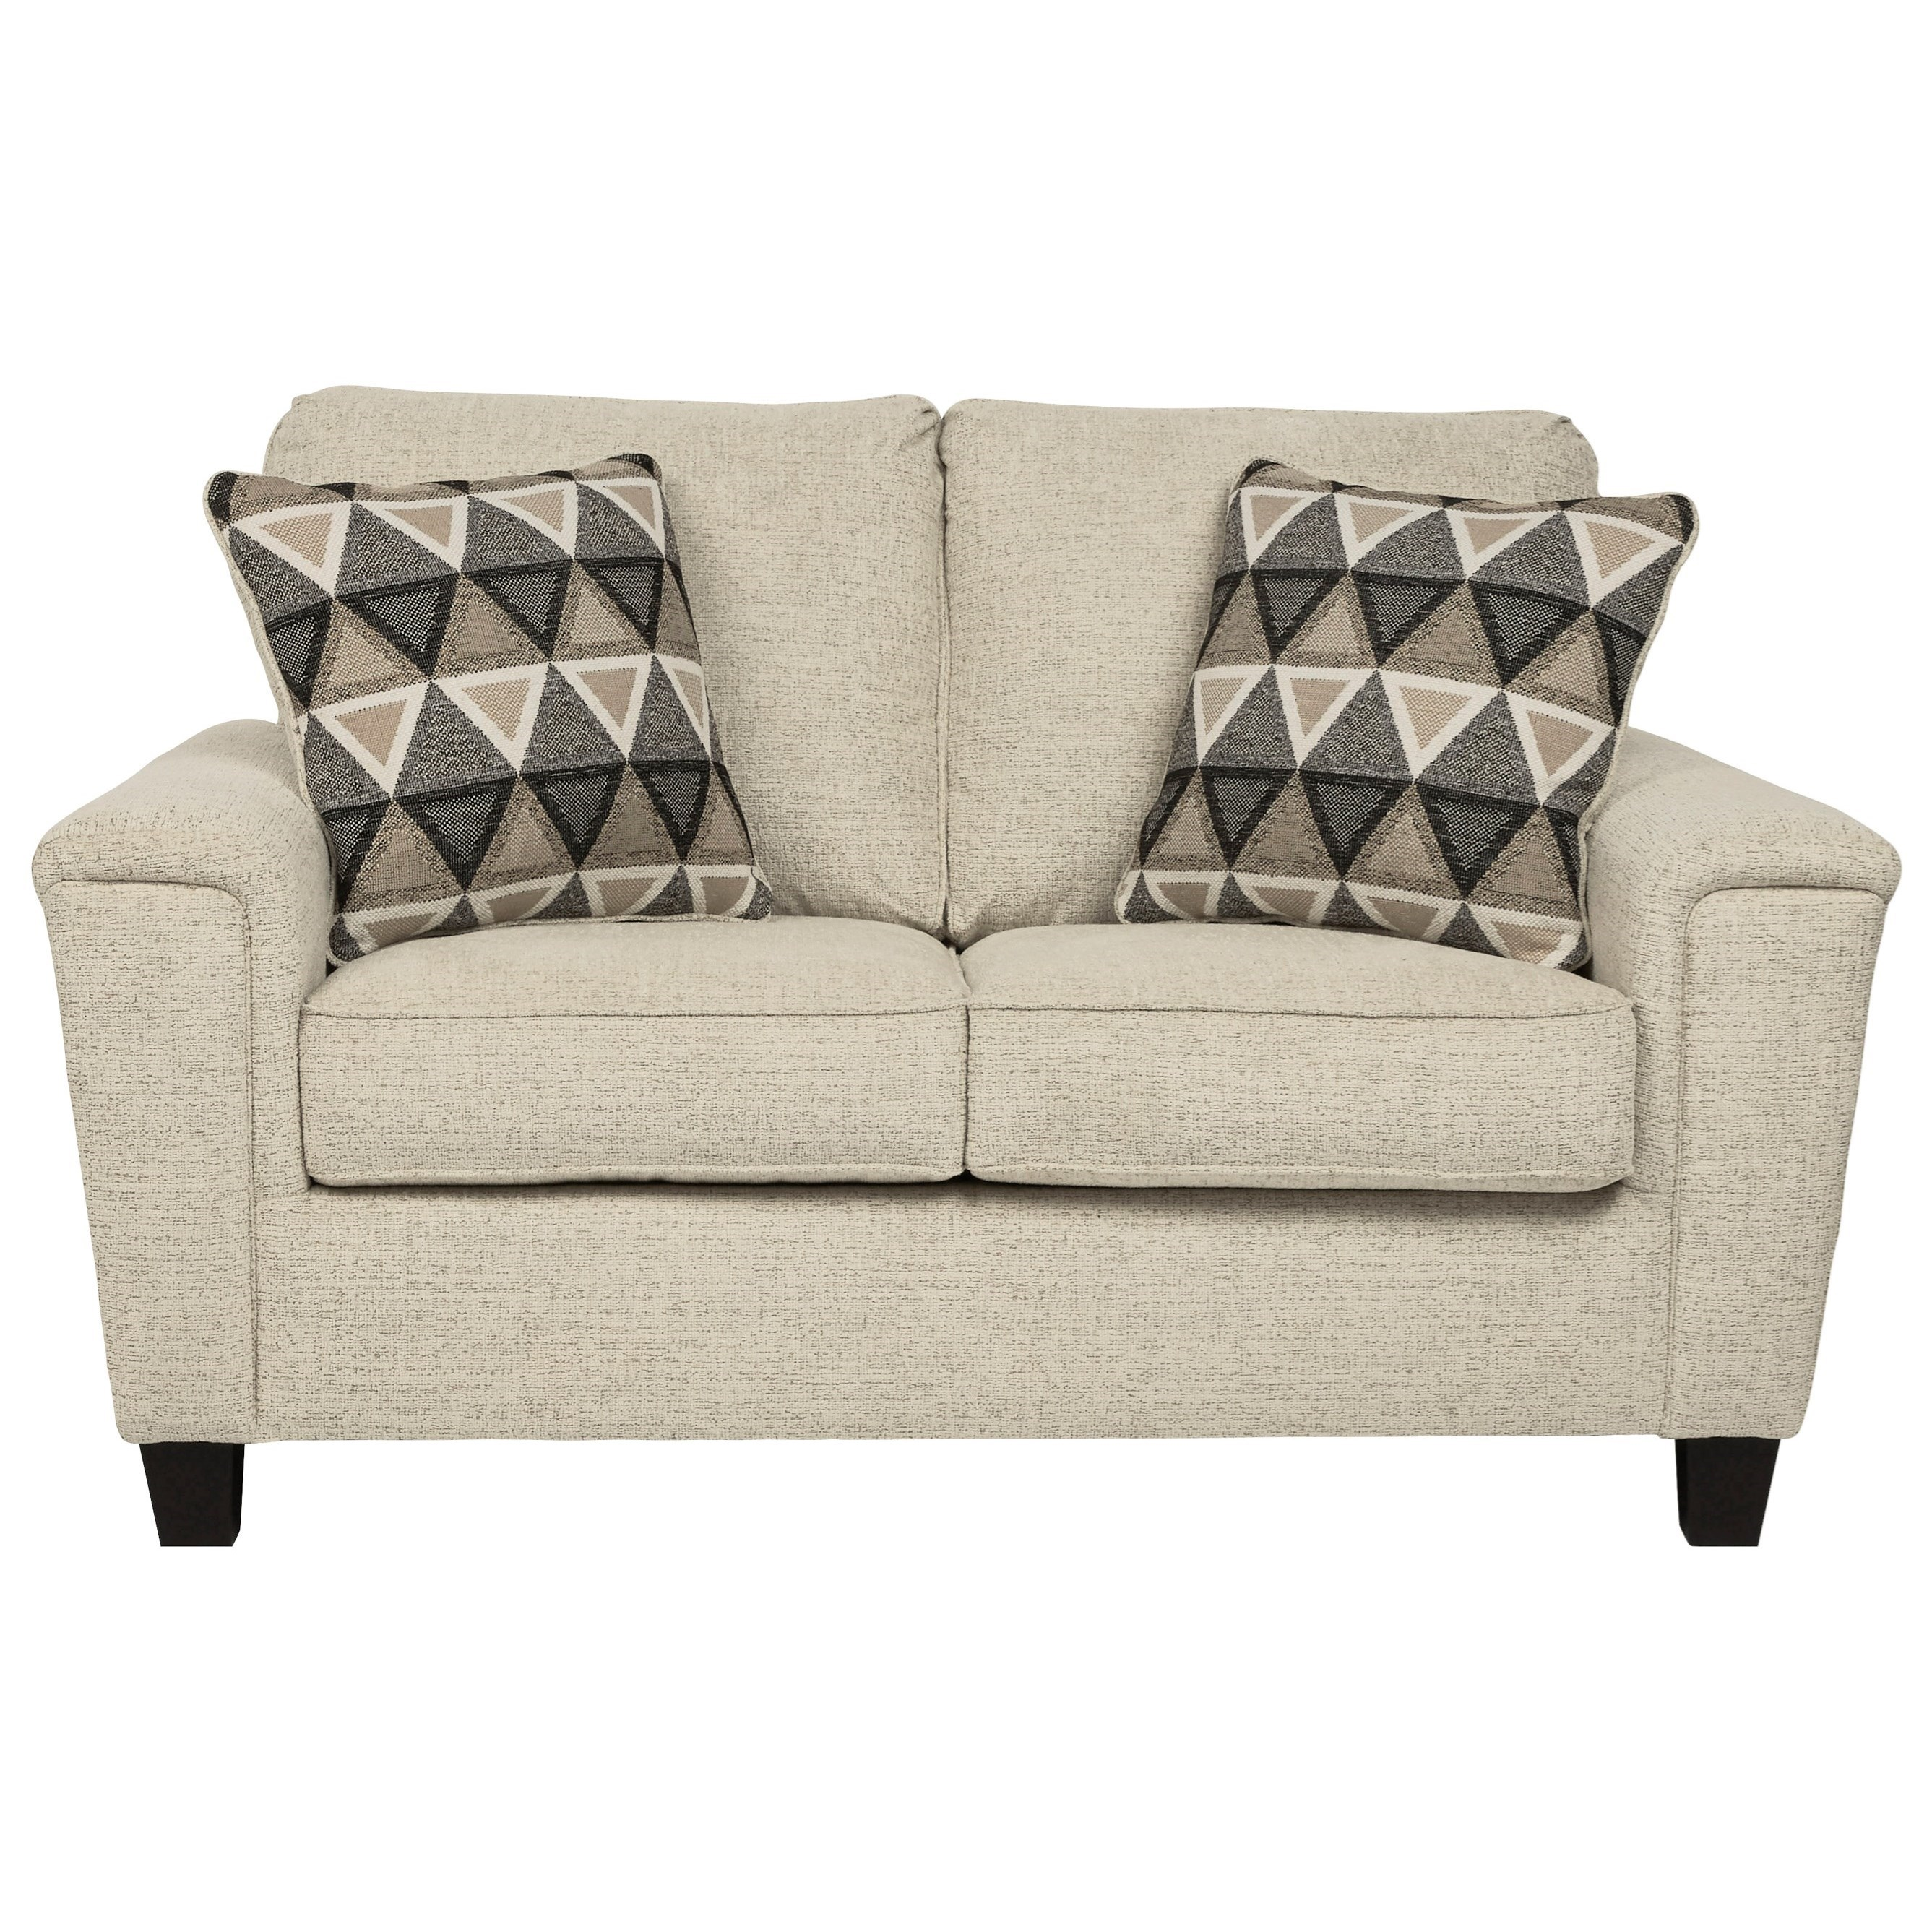 Abinger Loveseat by Signature Design by Ashley at Catalog Outlet